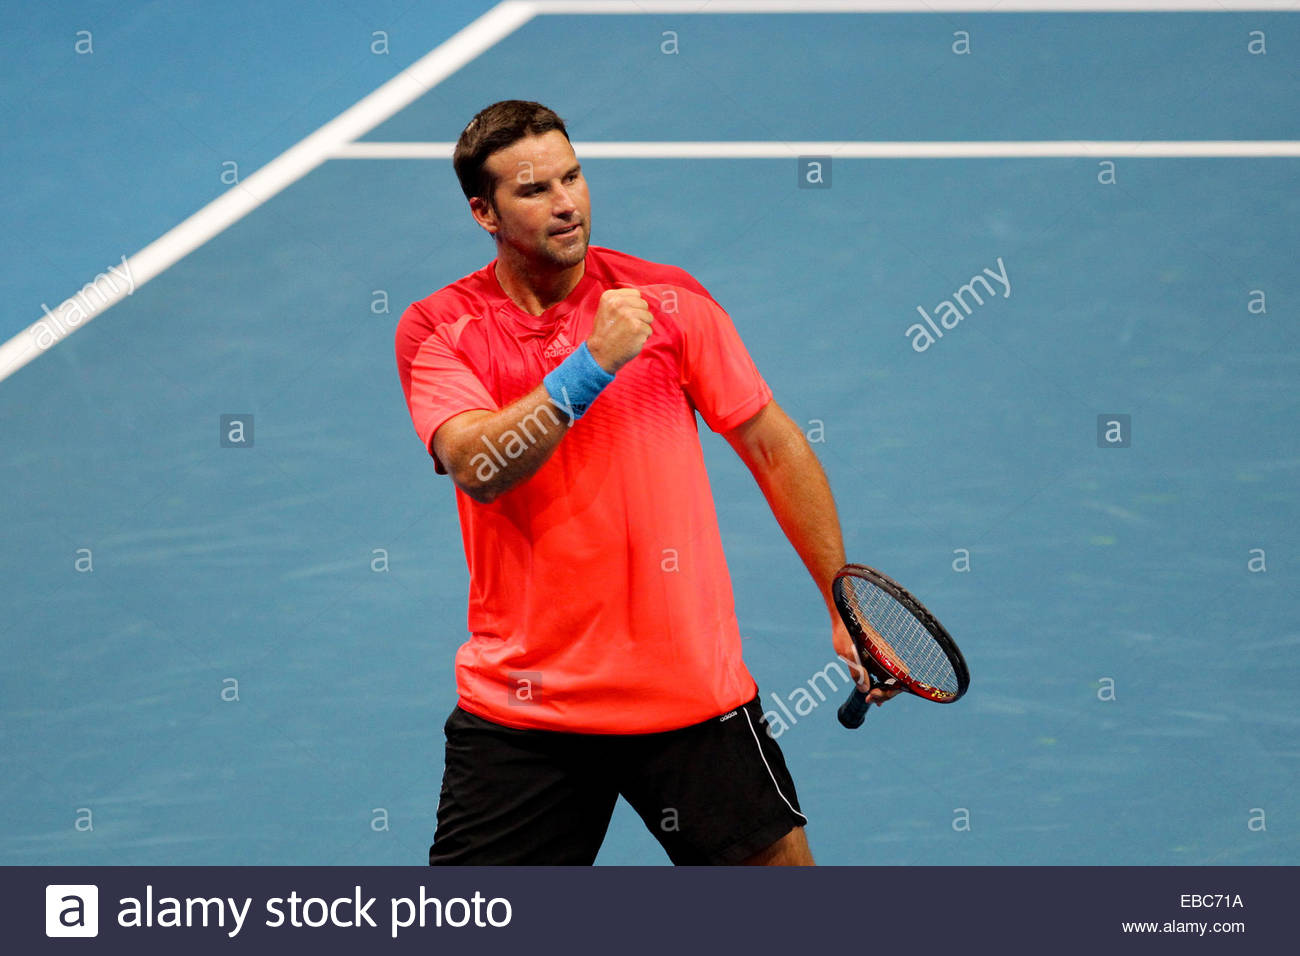 Patrick Rafter of the Singapore Slammers gestures after a point